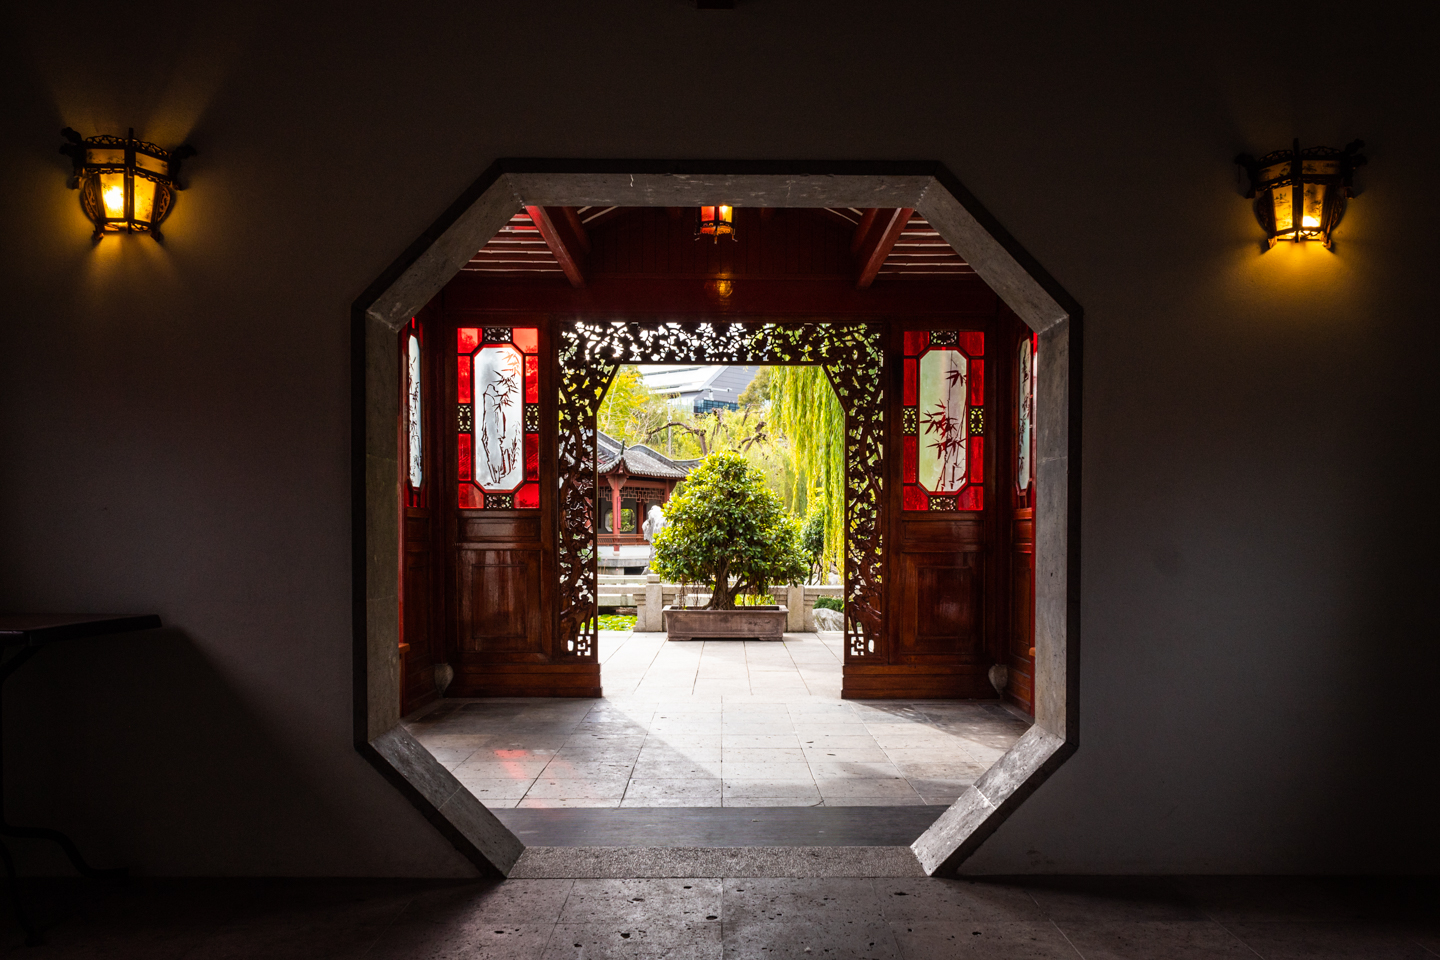 CRH_2018_CHINESE_GARDEN_OF_FRIENDSHIP_3117.jpg